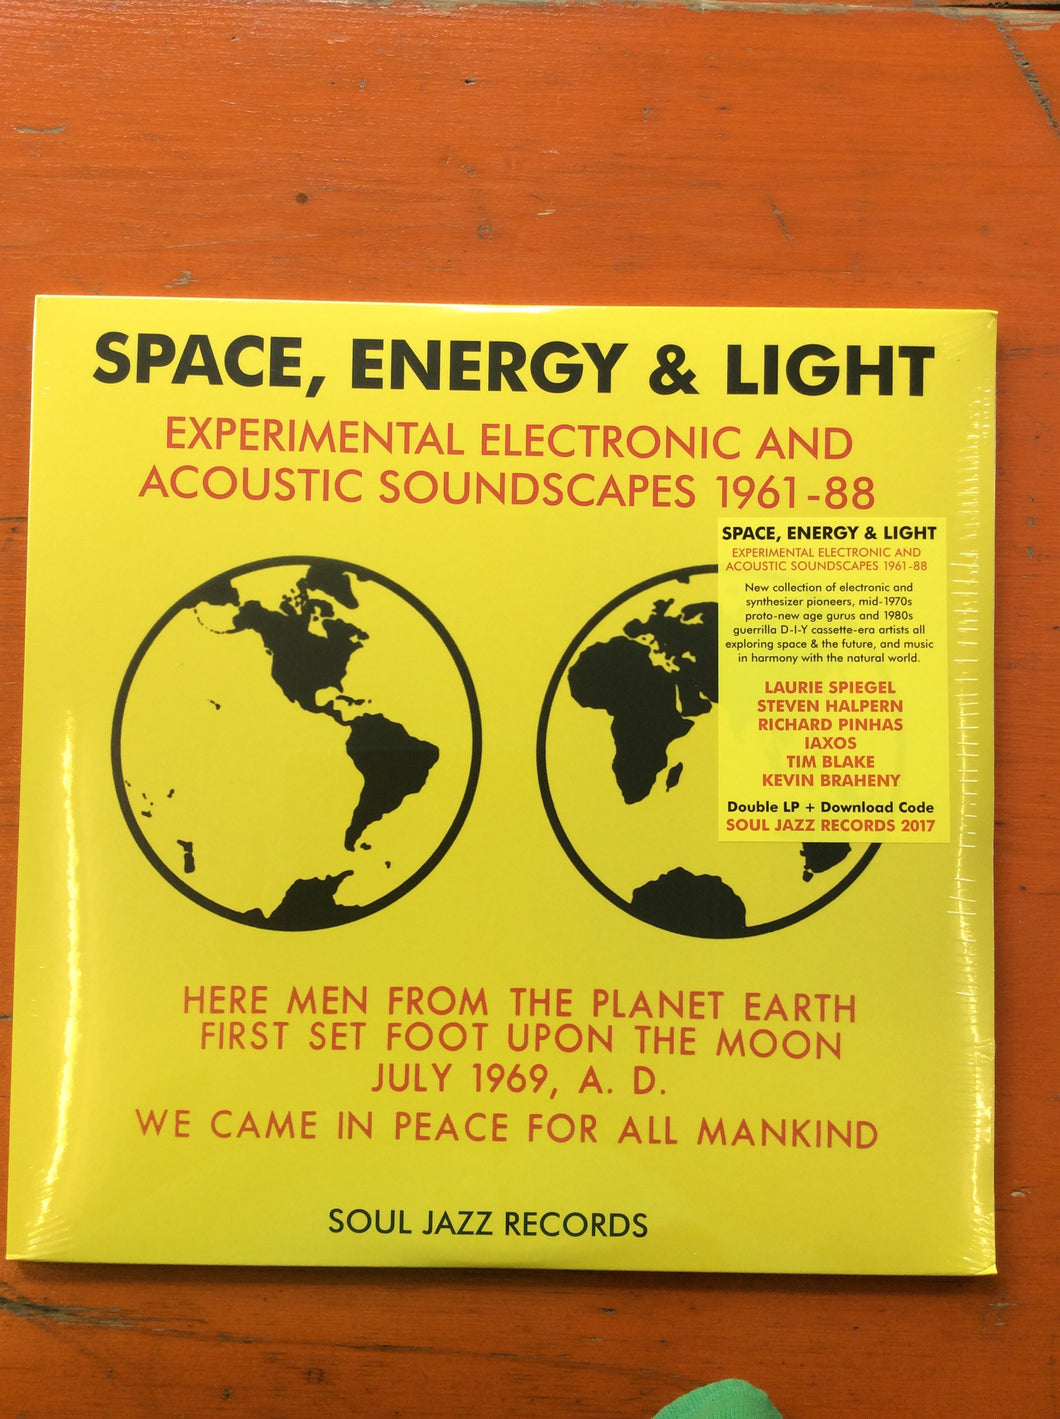 Space, Energy and Light - Experimental Electronic and Acoustic Soundscapes 1961 - 88